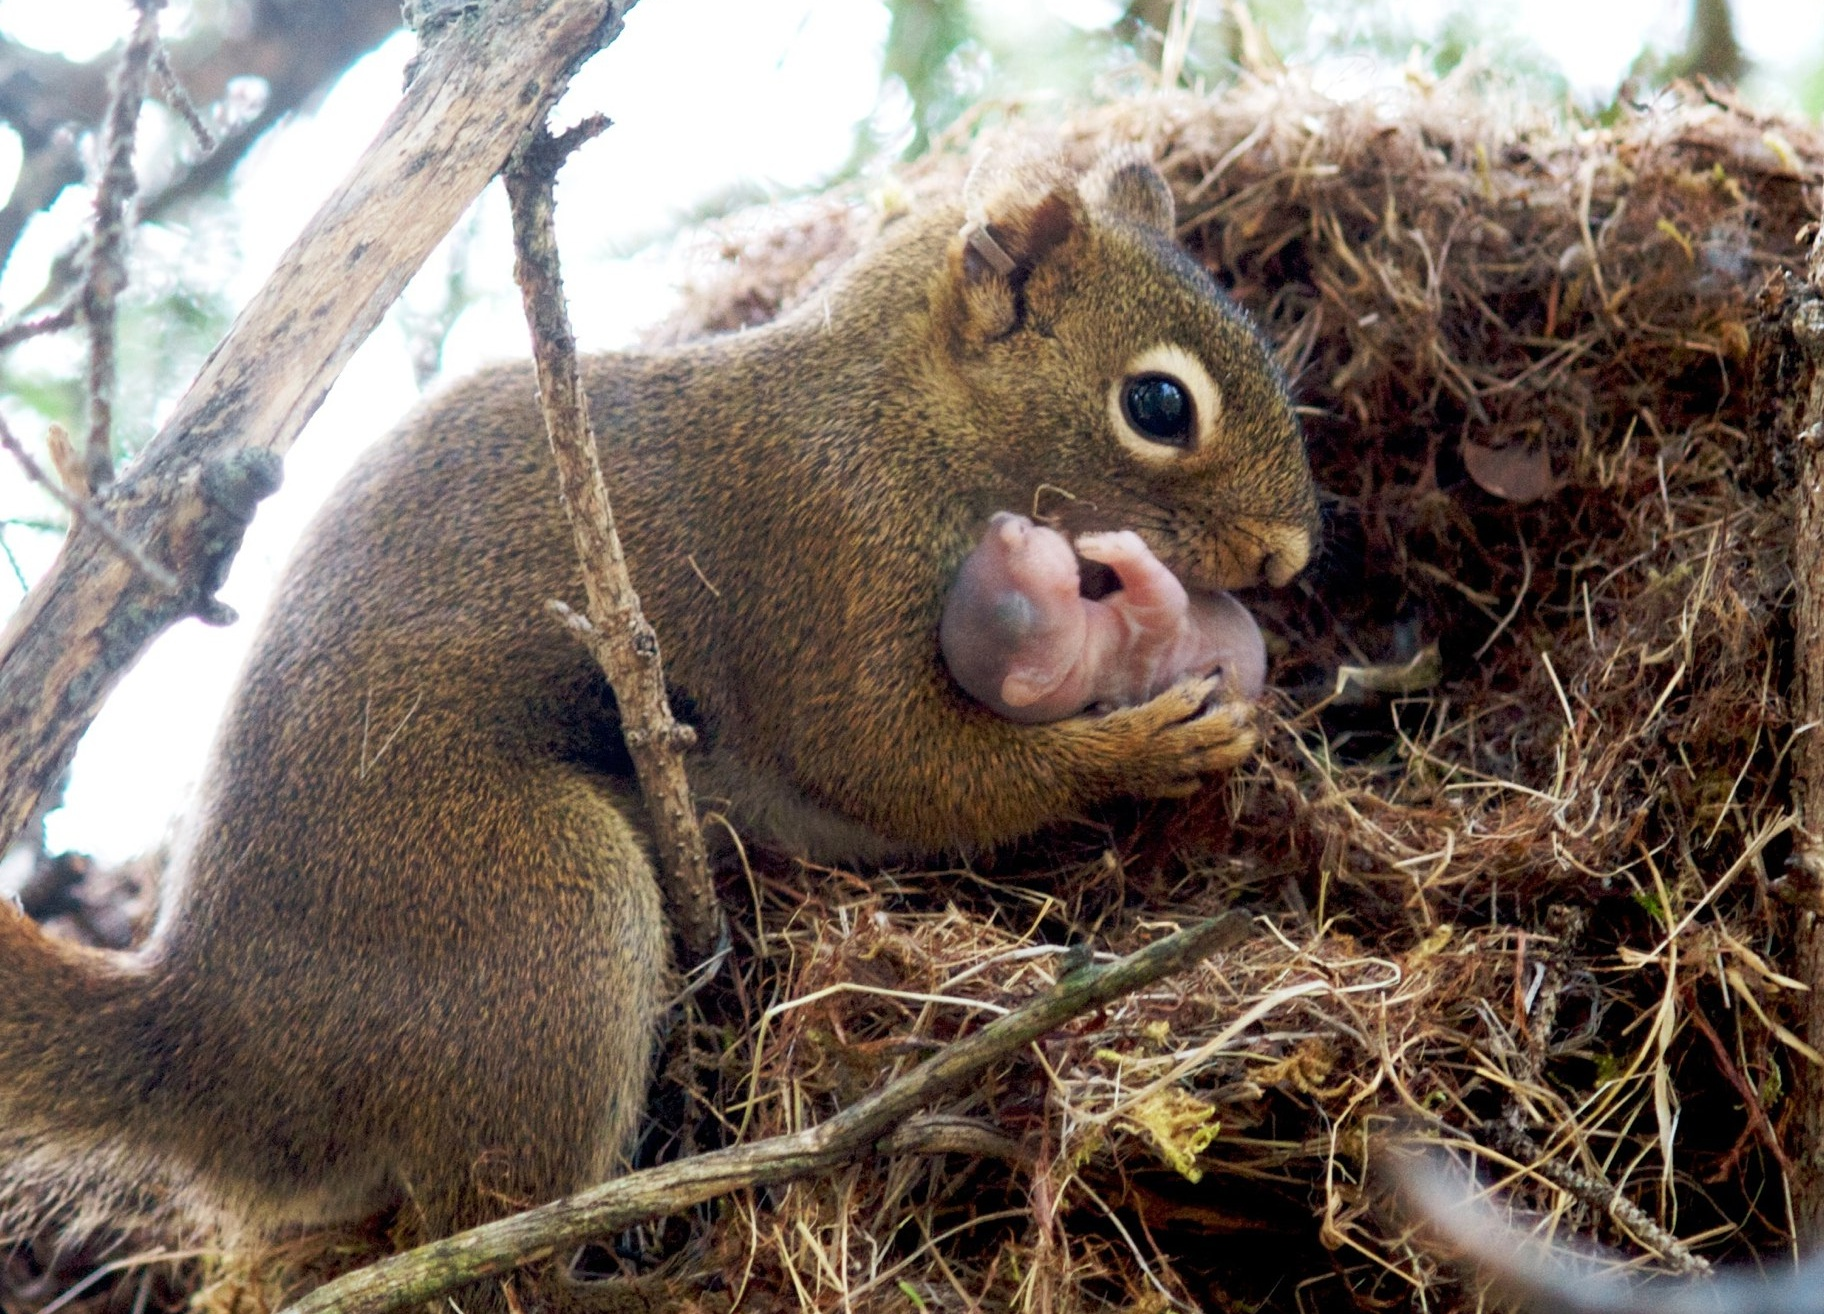 Red squirrel taking an adopted baby from nest. (Photo/Ryan W. Taylor)